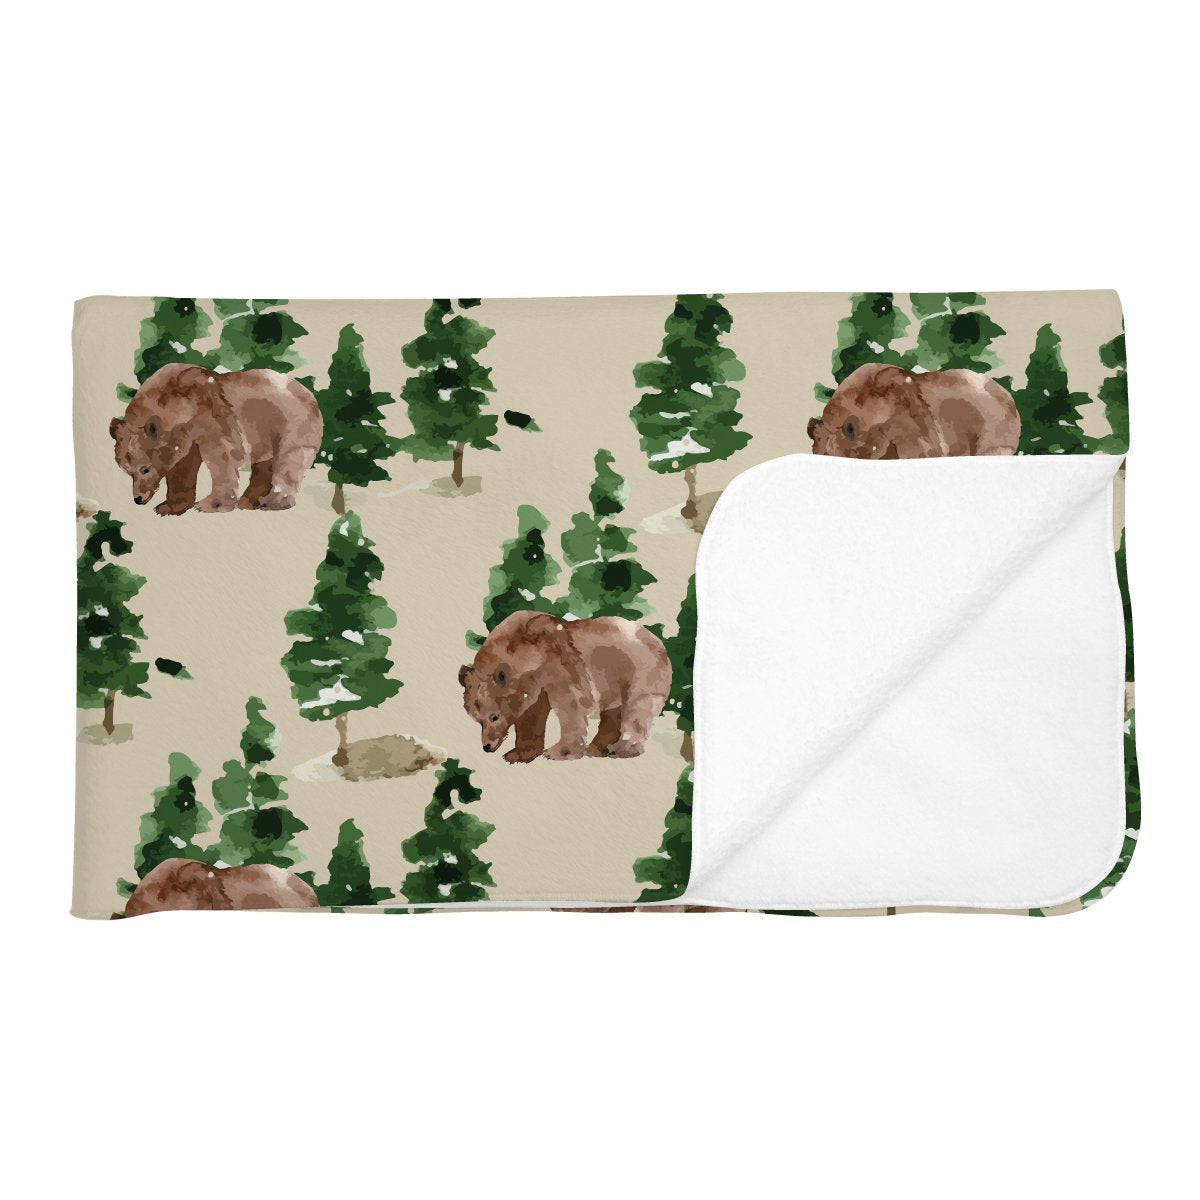 Aspen's Brown Bear | Adult Size Blanket